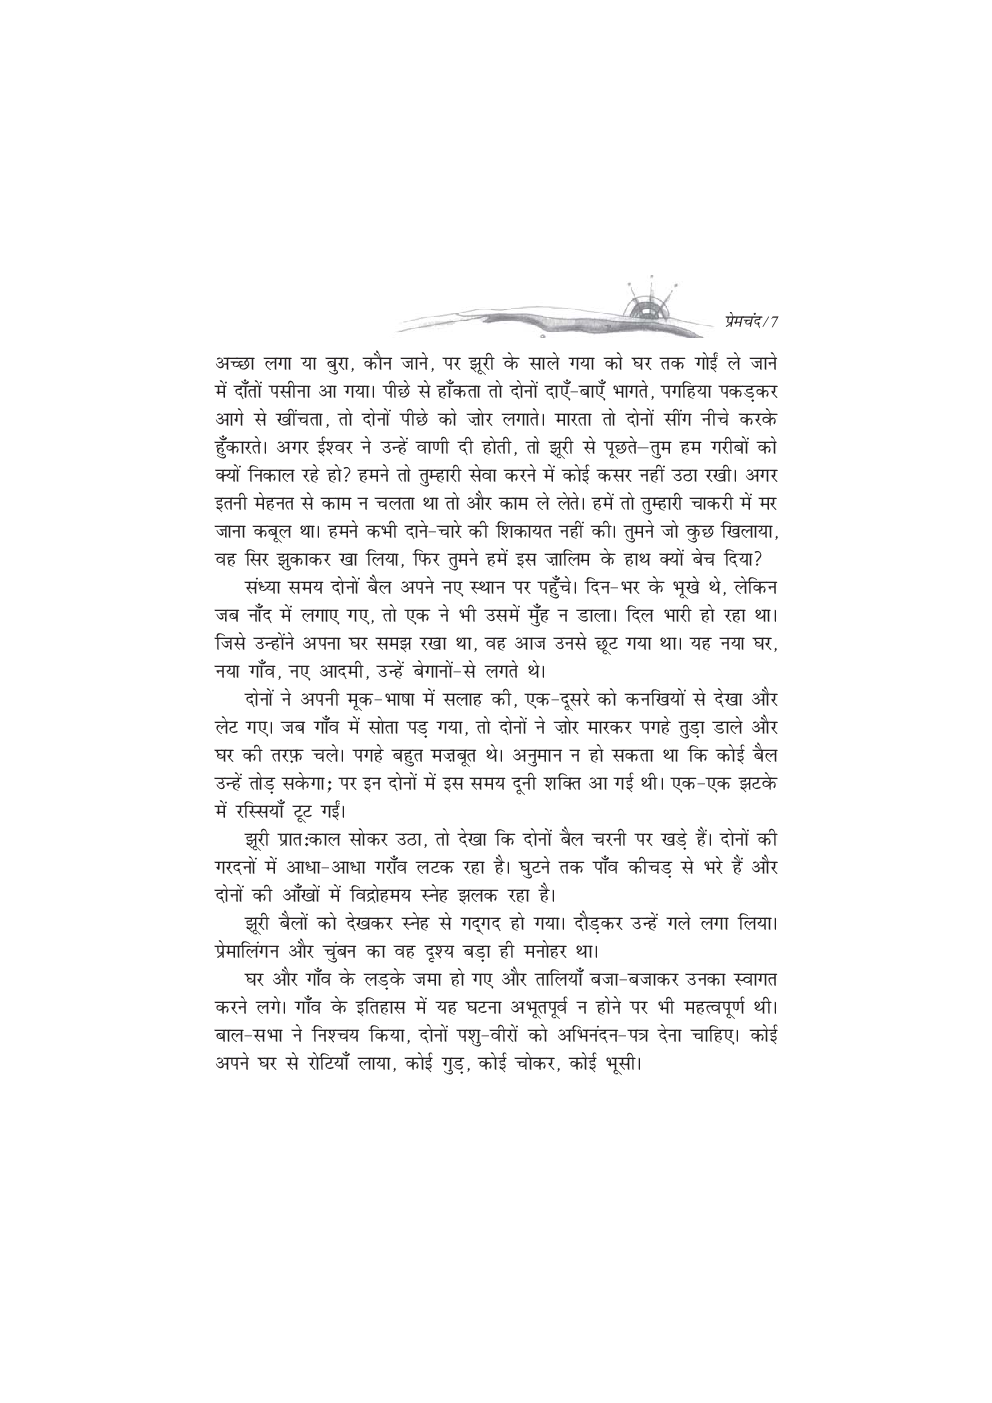 Ncert Kshitij X Guide Ebook Circuit Wizard Apk Download Free Tools App For Android Apkpurecom Array Hindi Kshitiz Textbook Class 9th By Rh Kopykitab Com